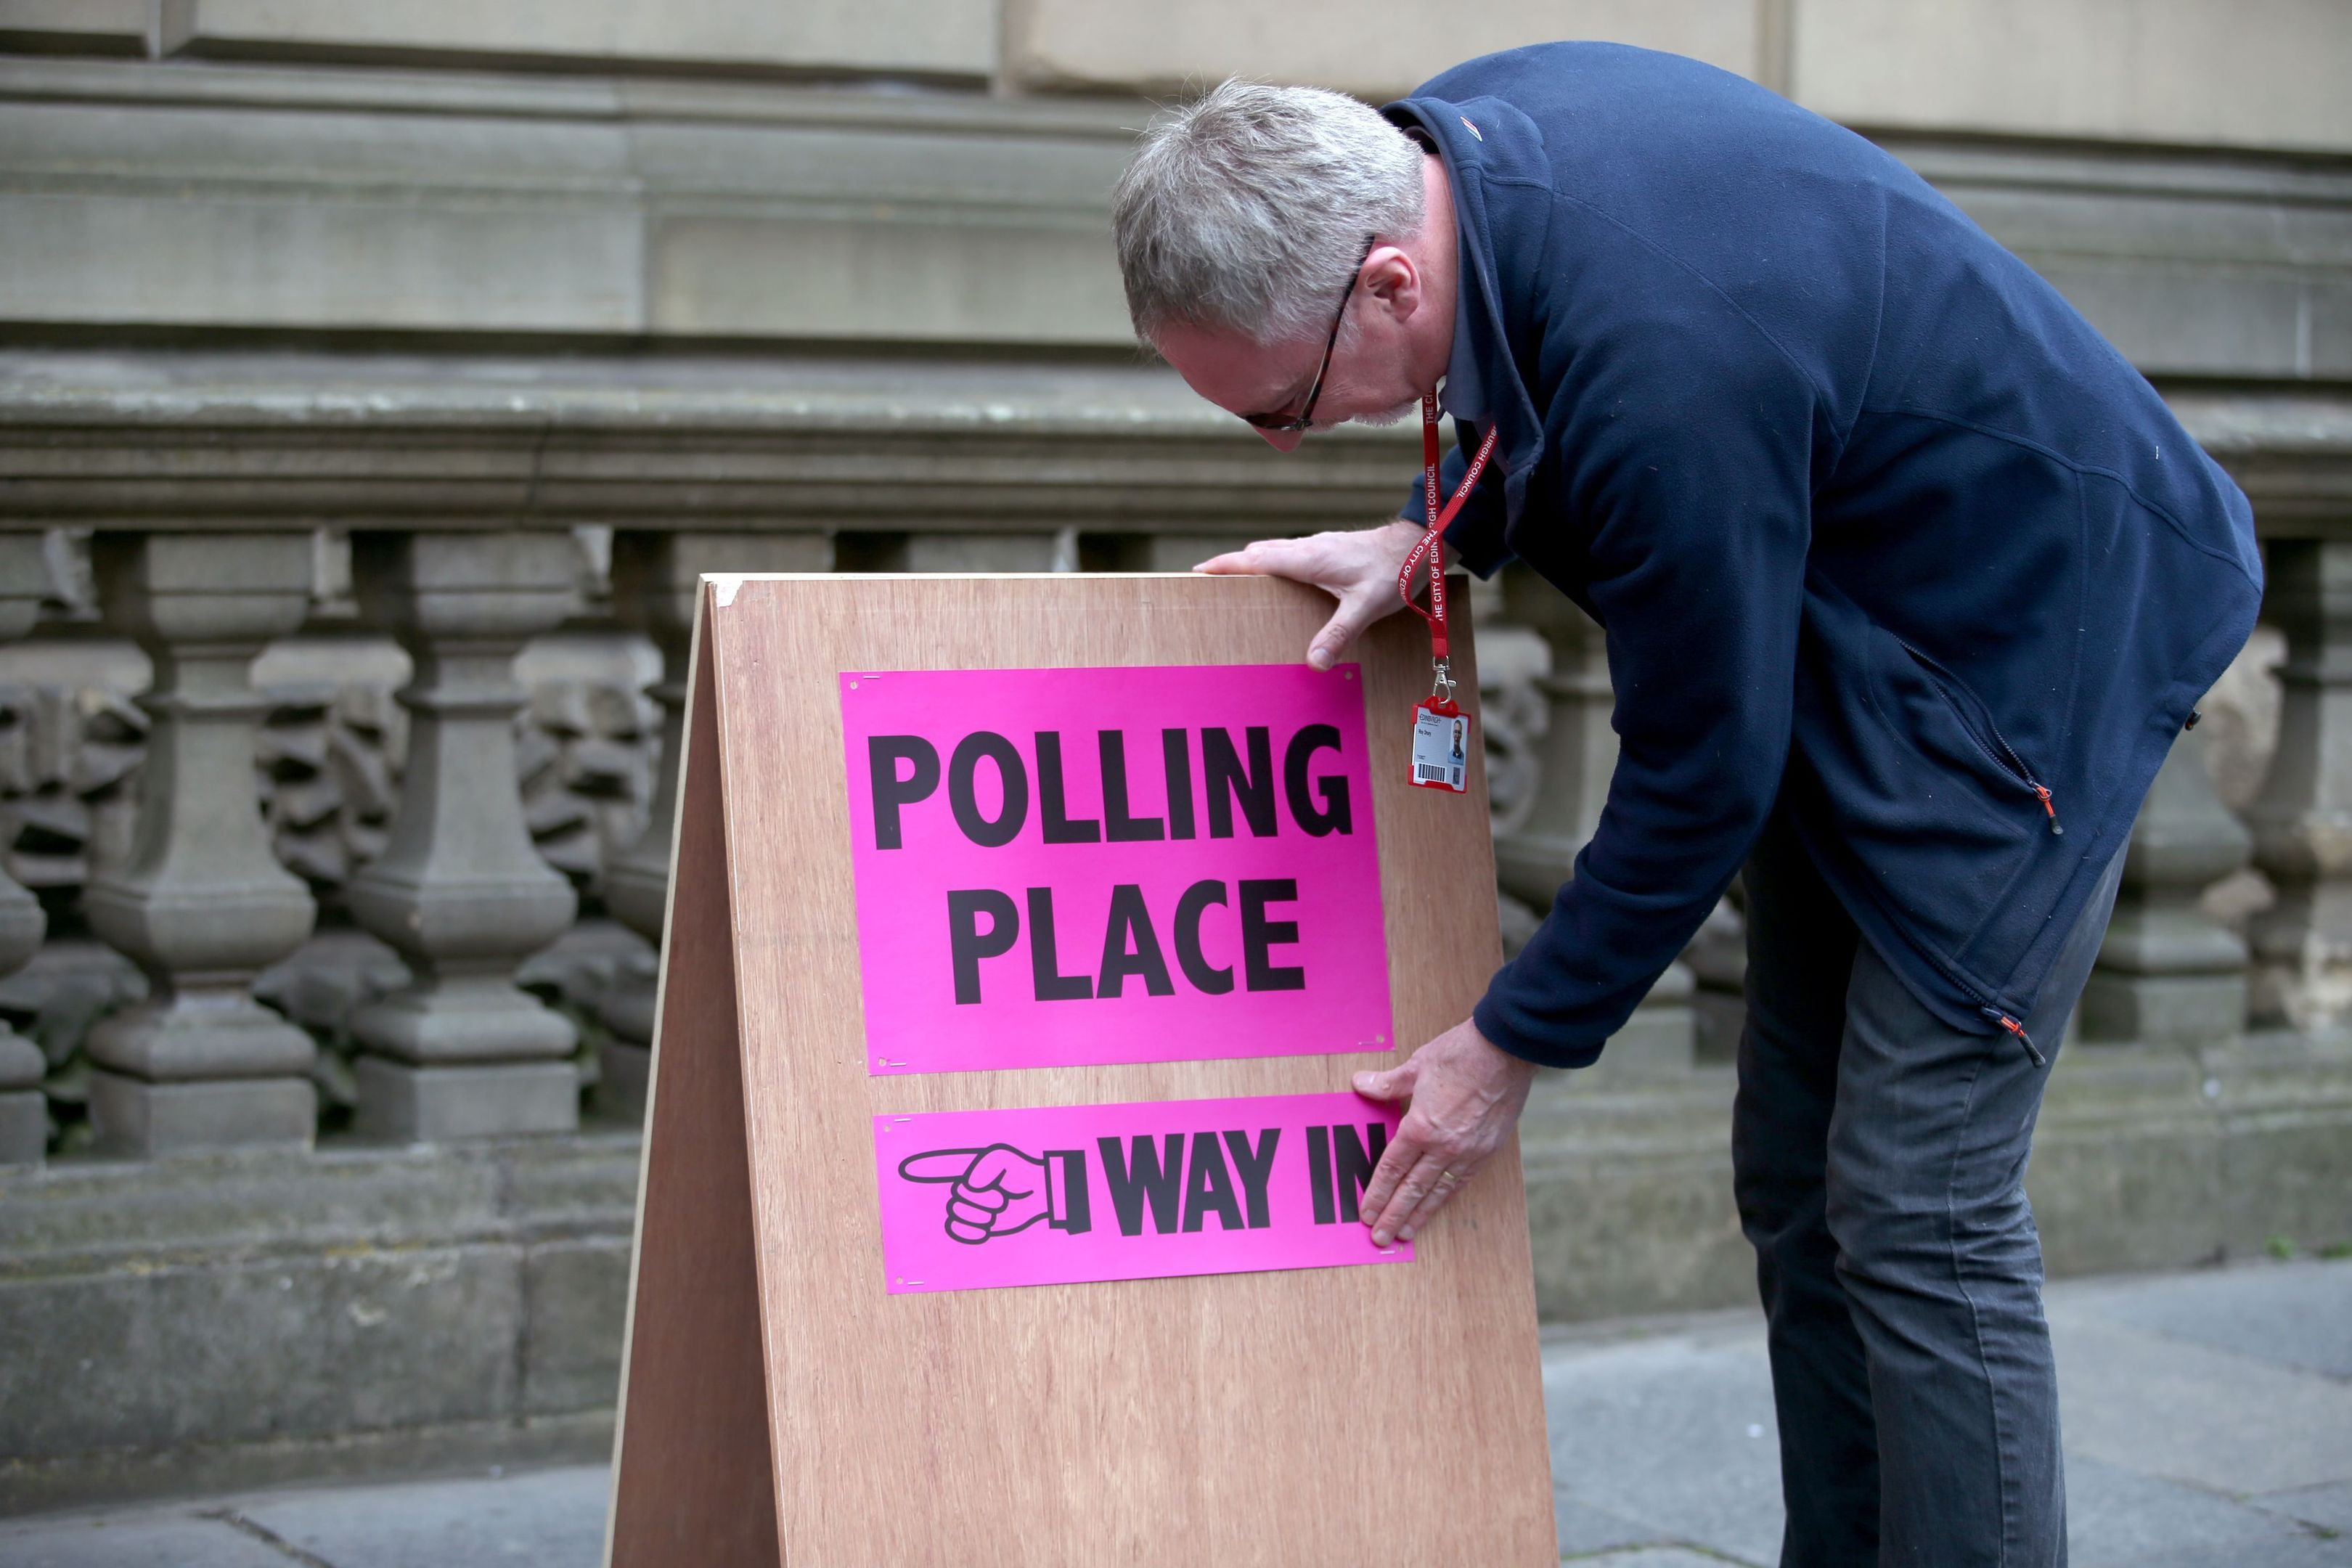 Polling logistics officer Roy Drury secures a polling station sign from Lothian Chambers in Edinburgh (Jane Barlow/PA Wire)